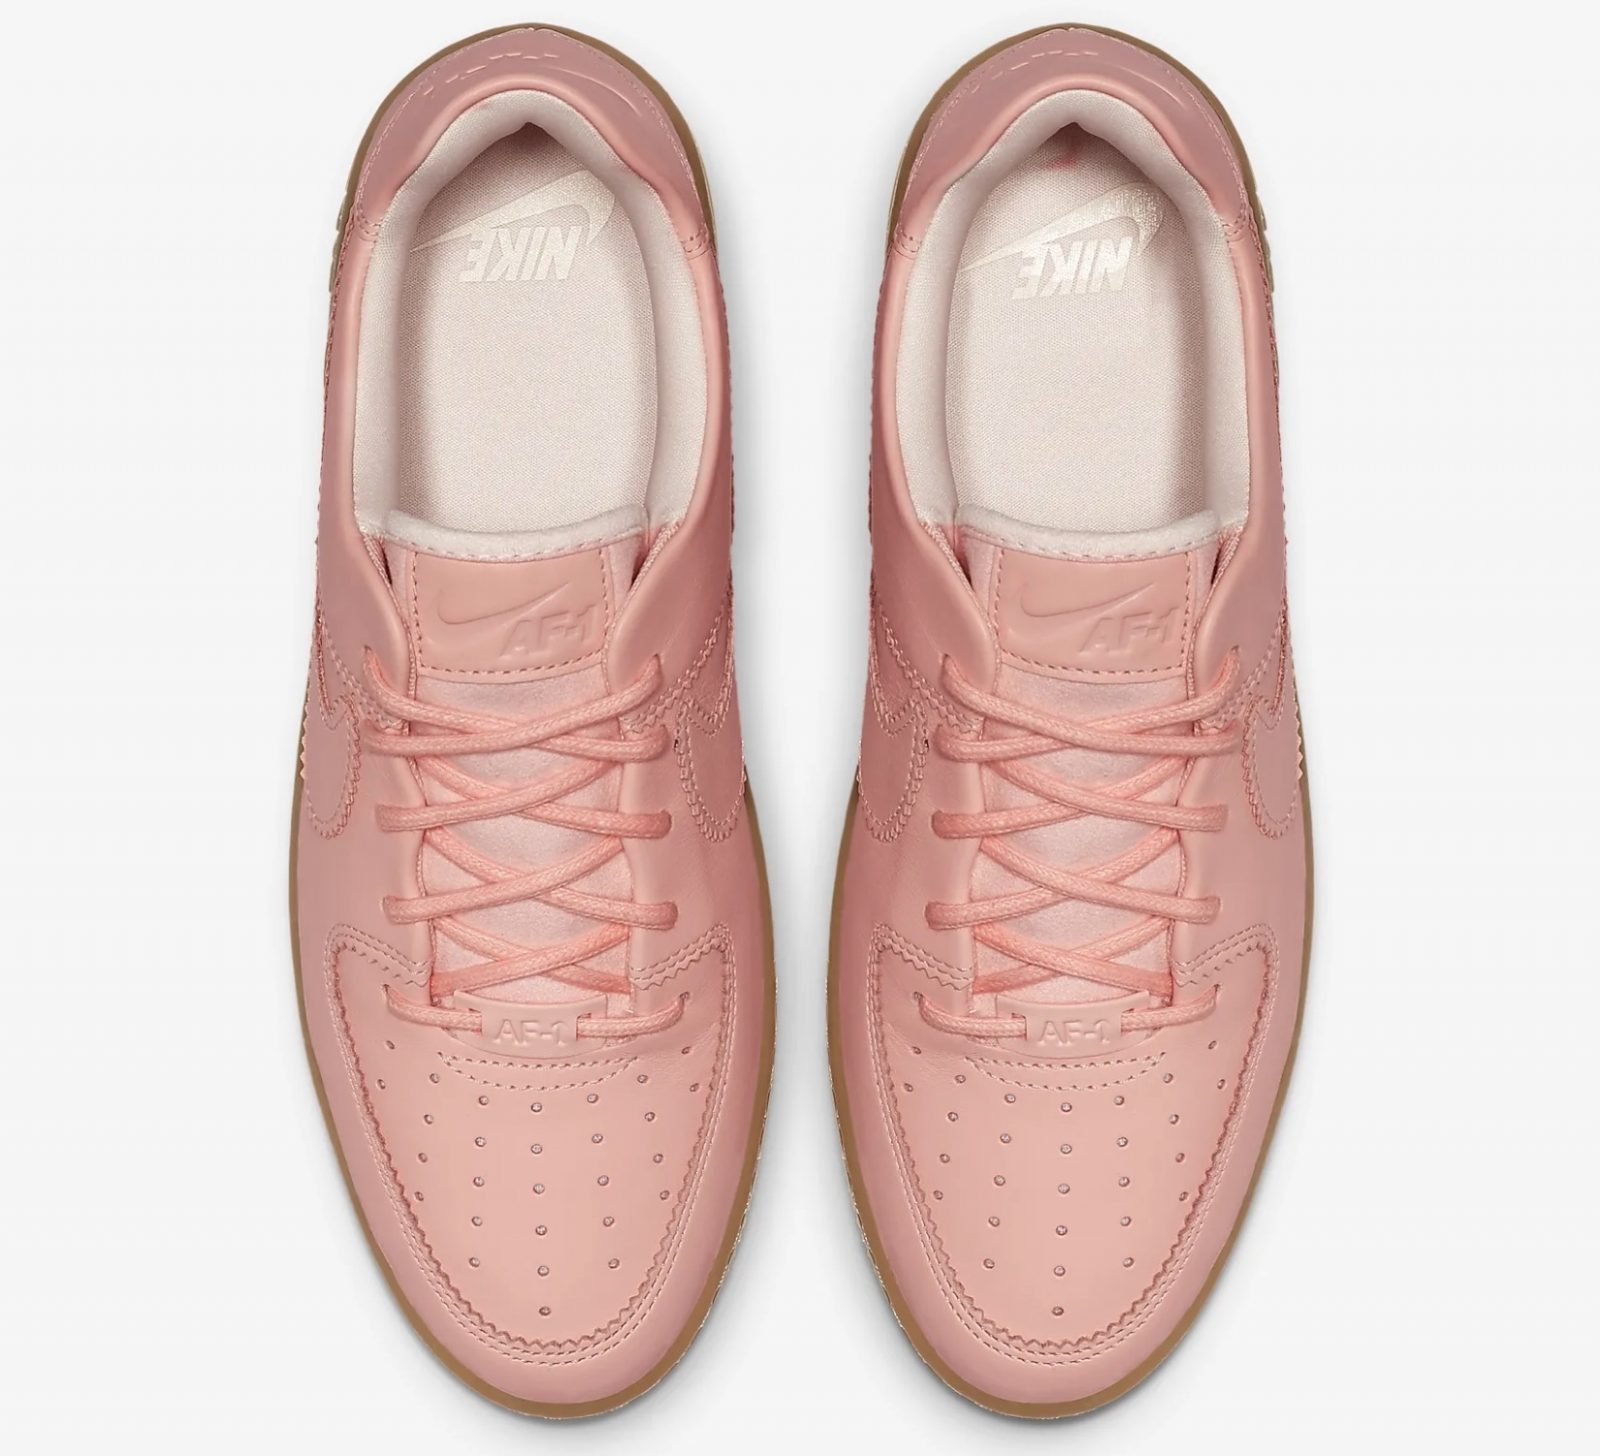 Get Nearly 50% Off This Pink Nike Air Force 1 Sage In Washed Coral 5 above